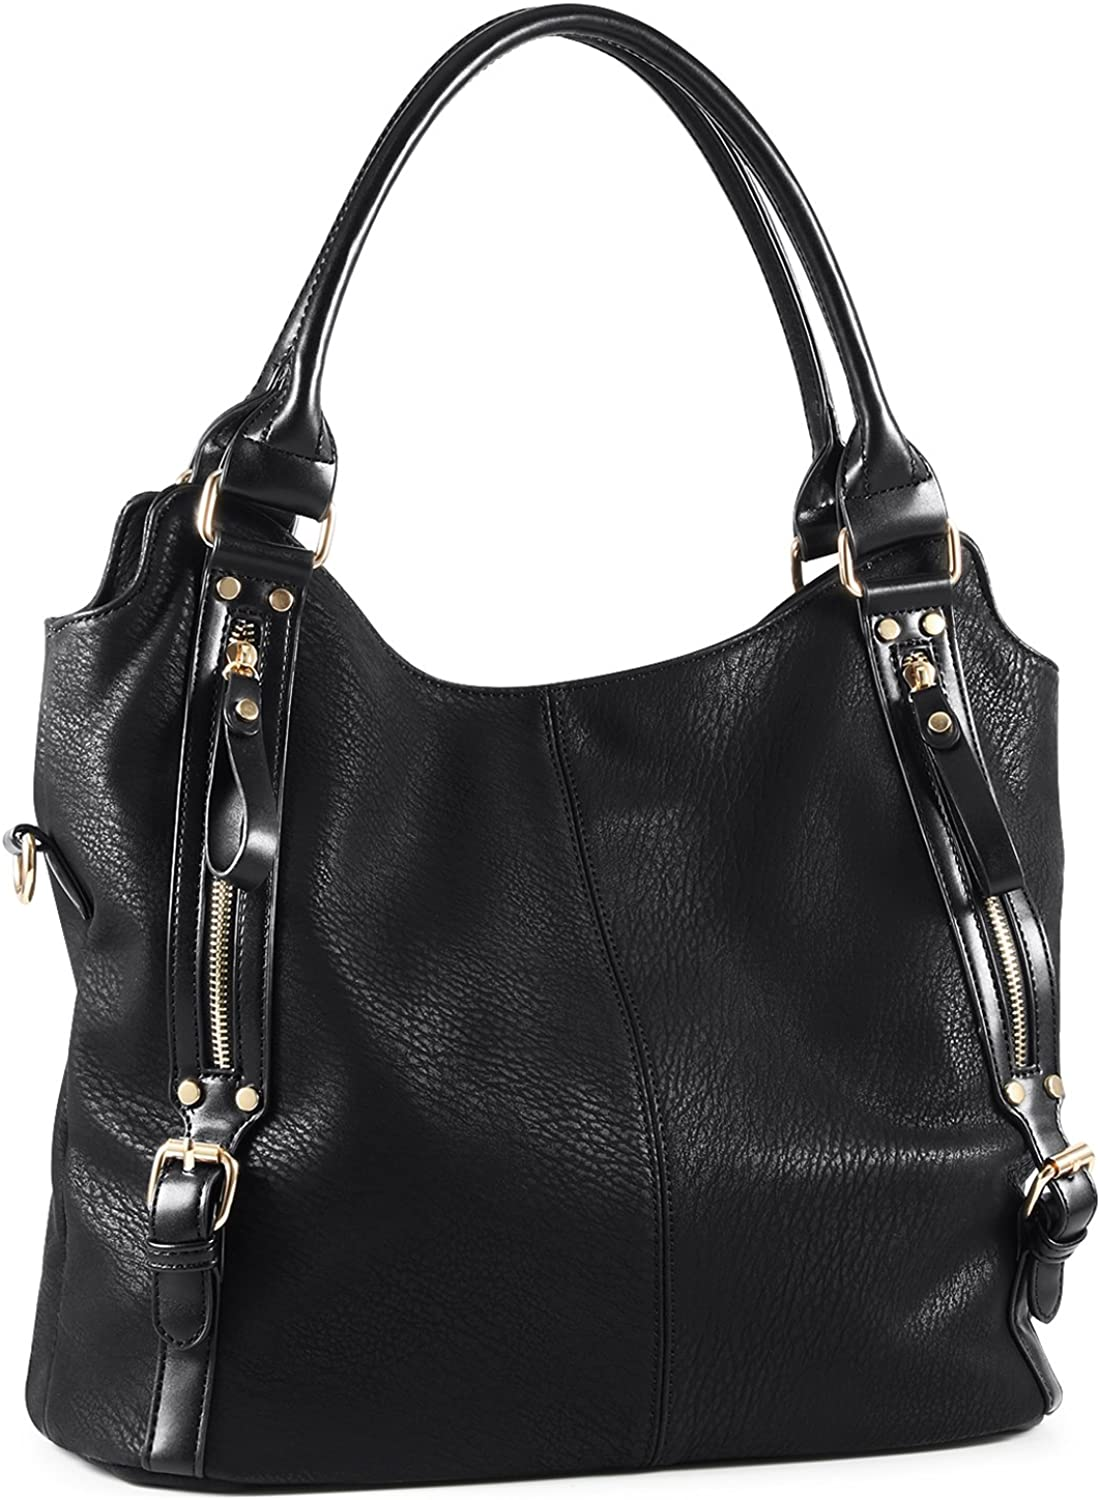 Ladies 3 in 1 Top Zip Closing Faux Leather Tote Woman Shopper Shoulder Hobo Bag